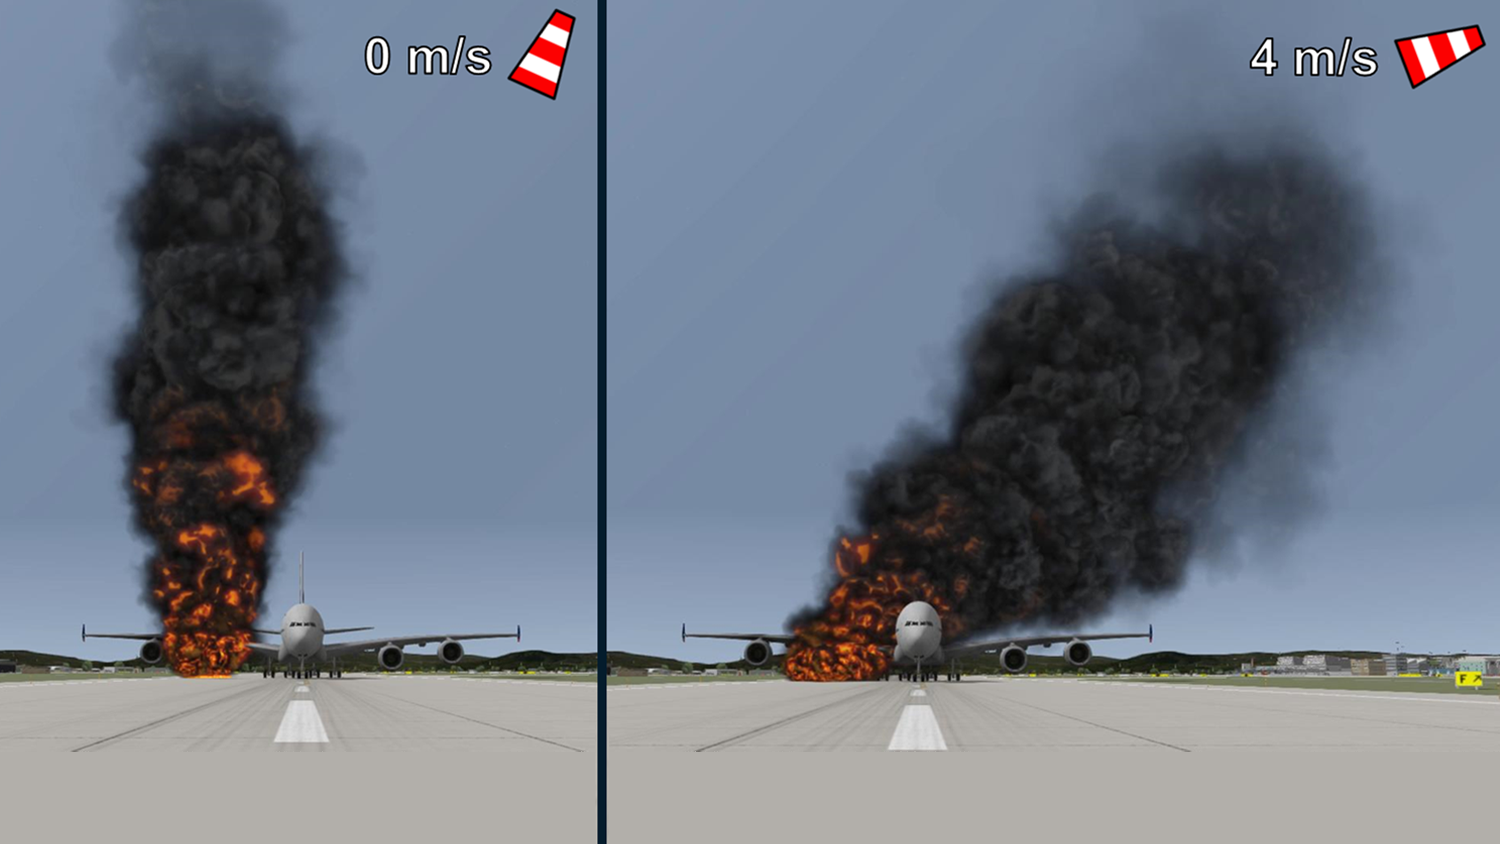 Wind speed and direction changes affecting fire and smoke in the virtual environment calculated by ADMS software.